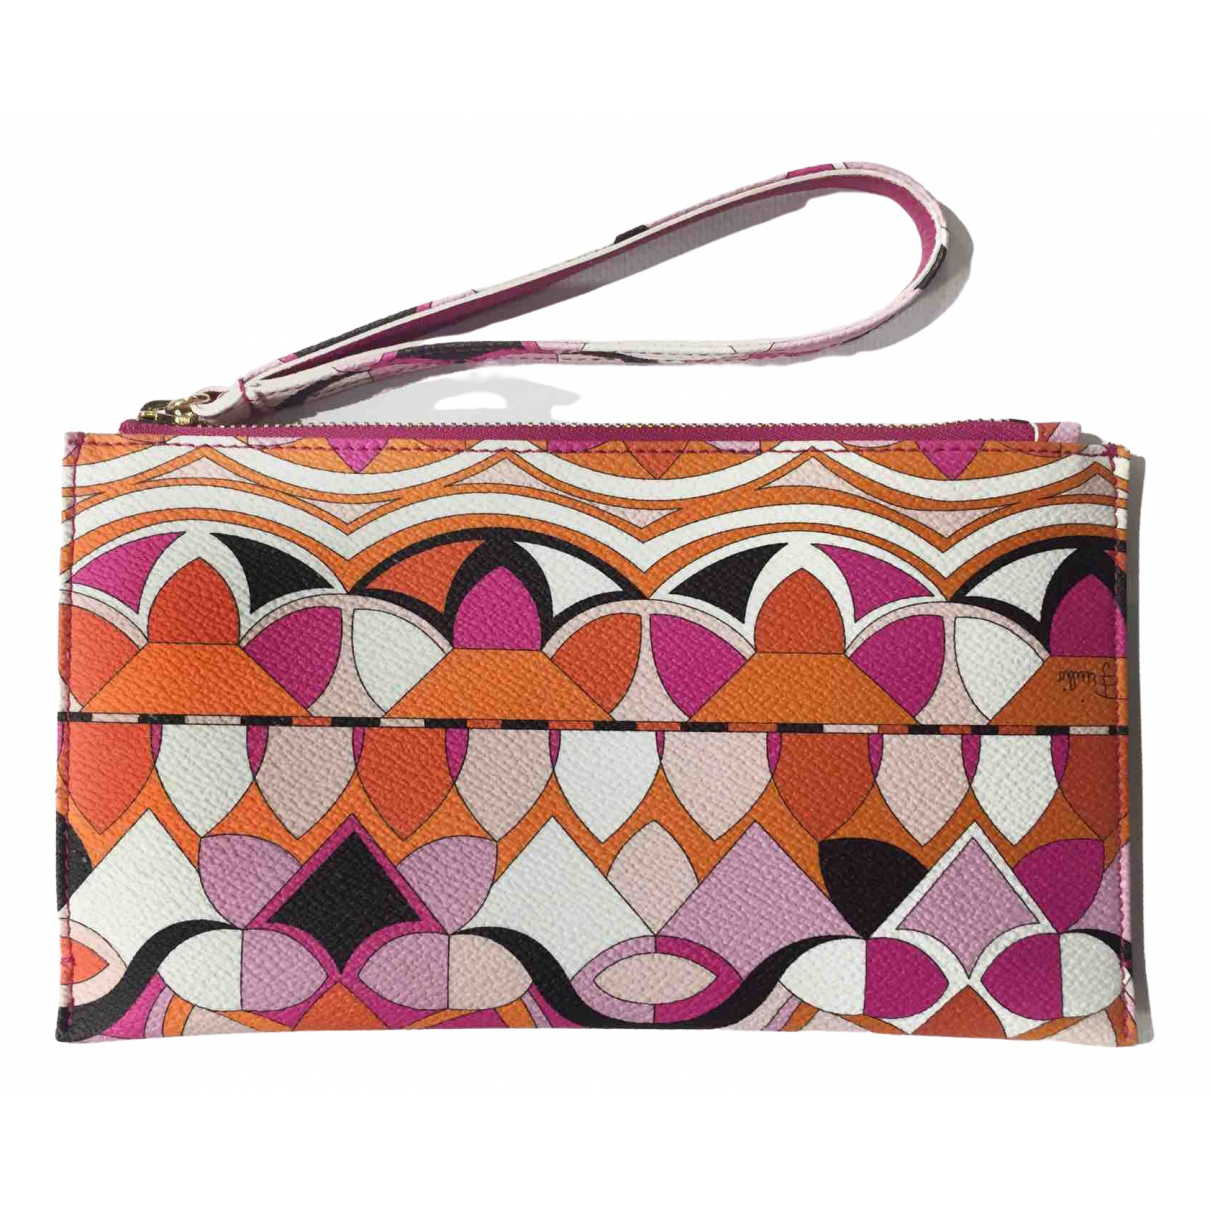 Emilio Pucci \N Pink wallet for Women \N